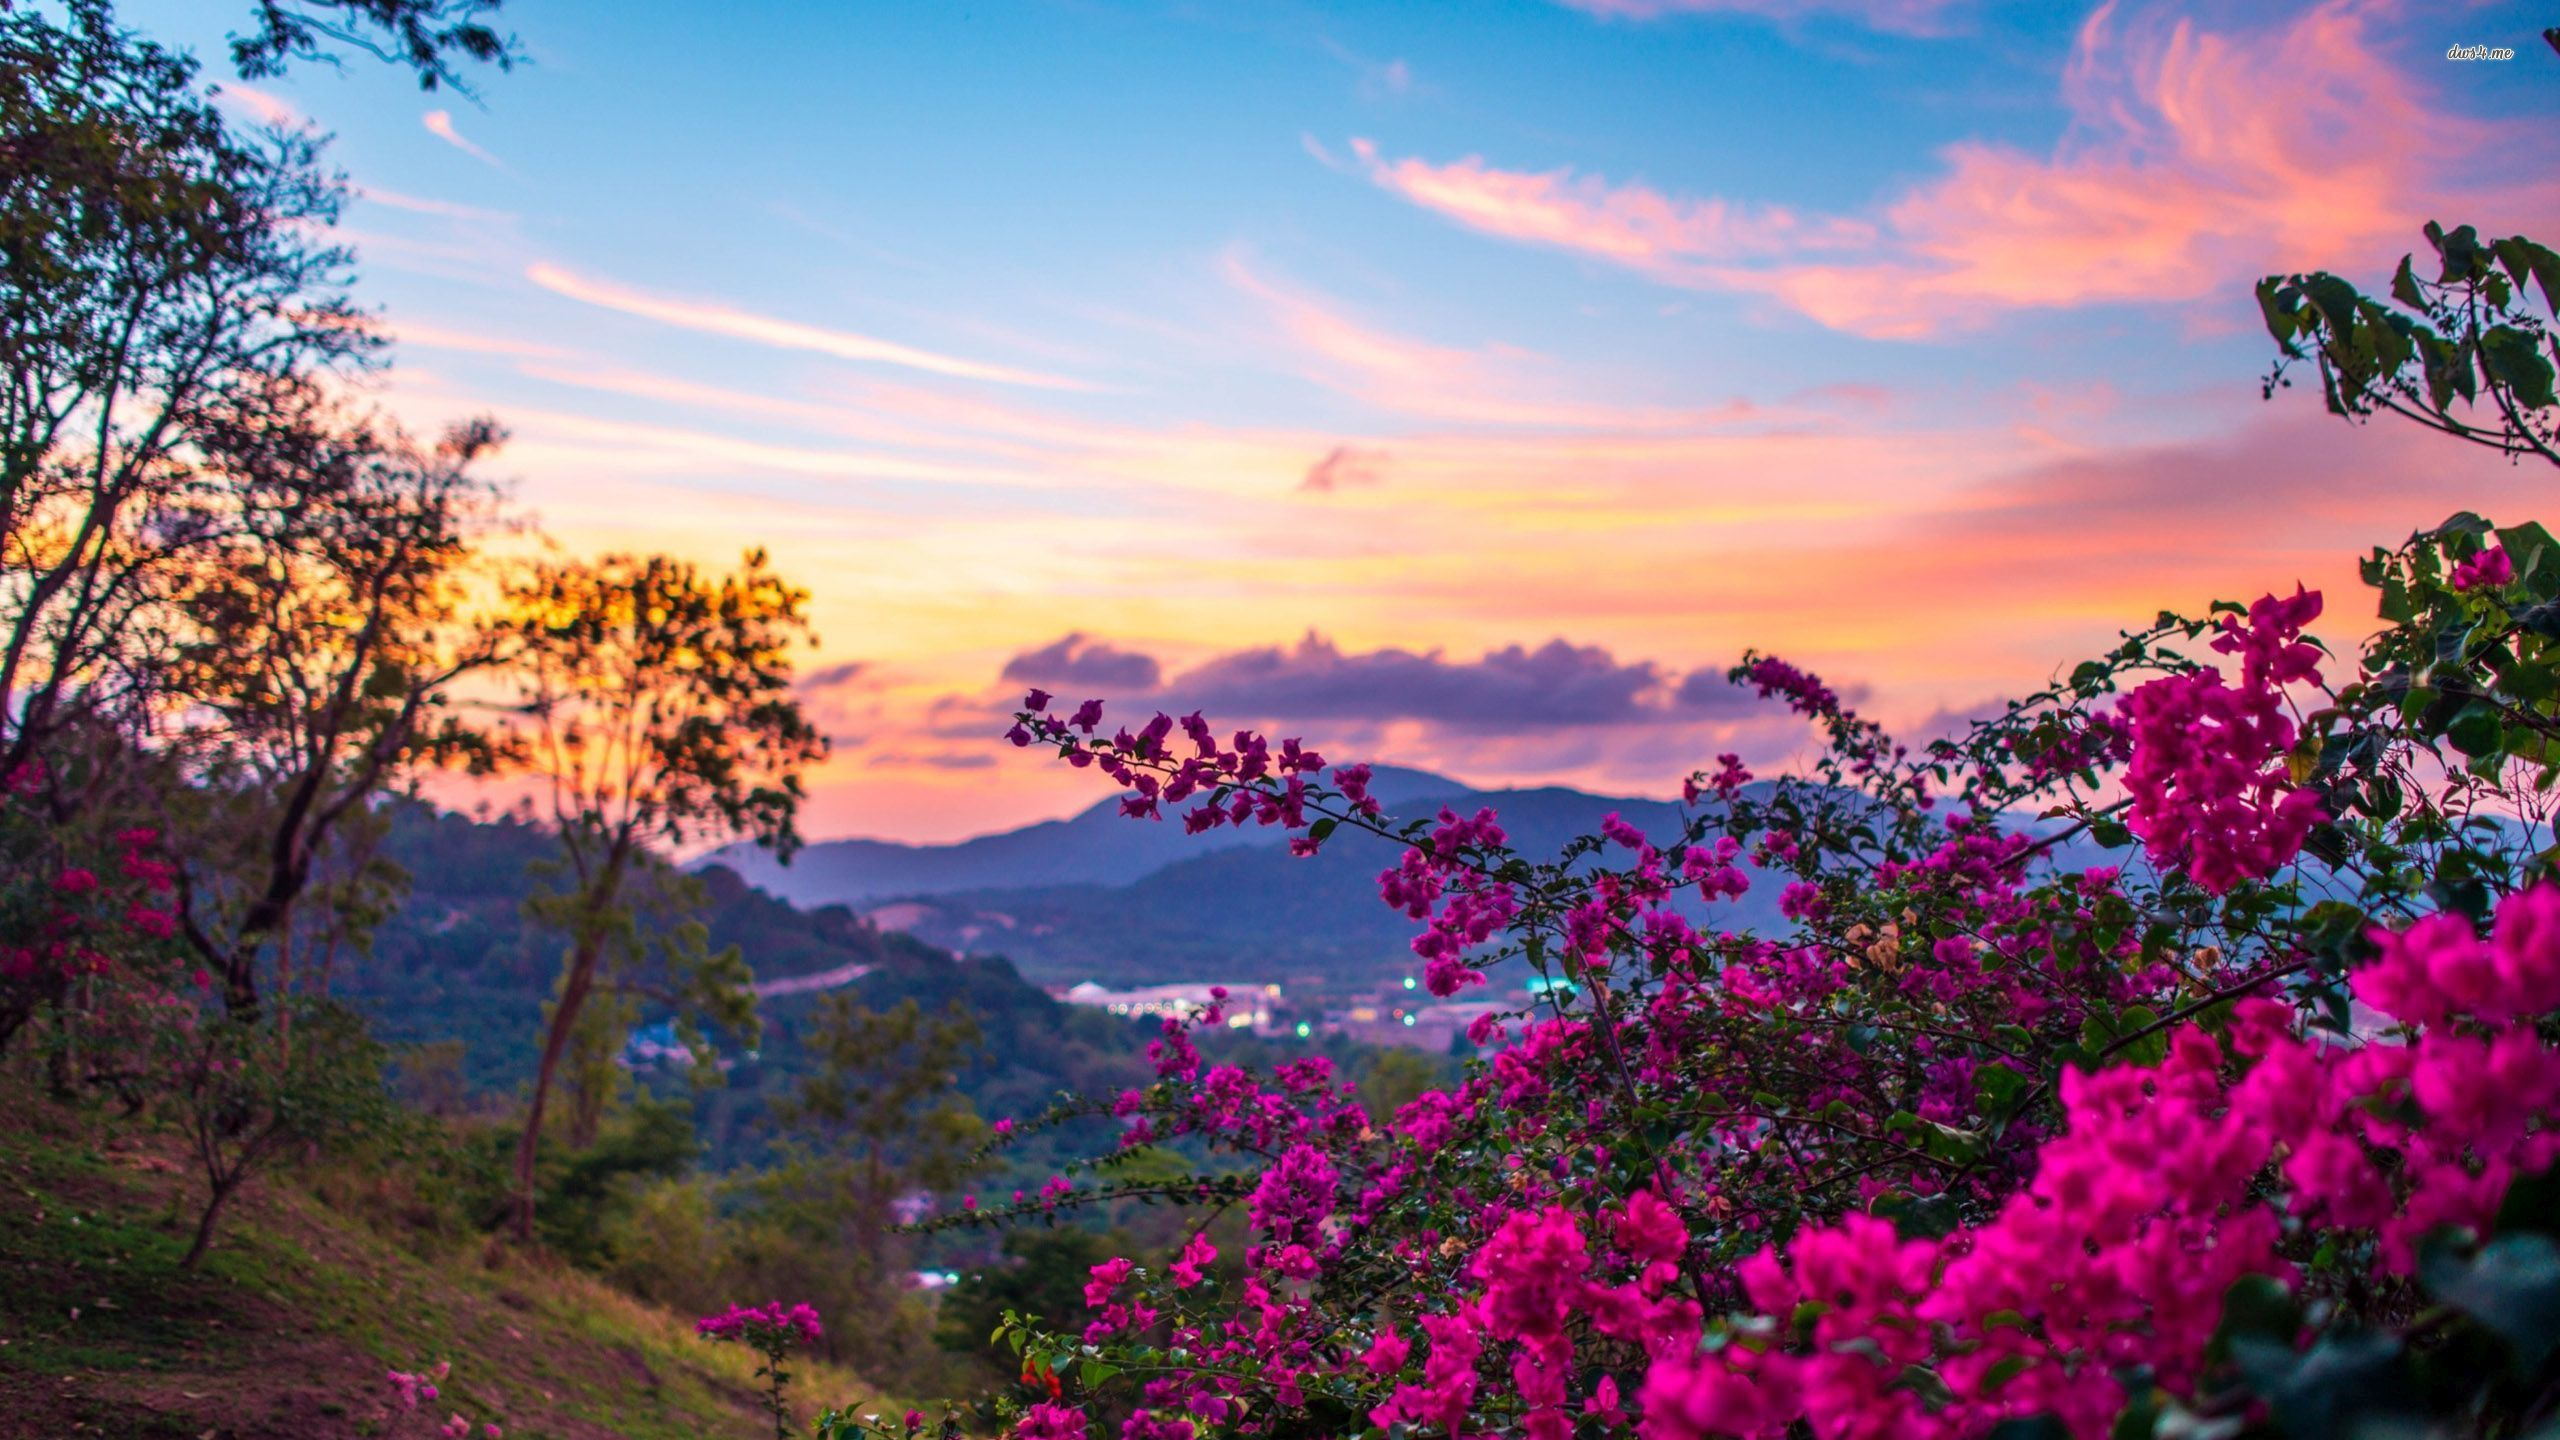 Beautiful Nature & Landscapes Wallpapers - Page 1